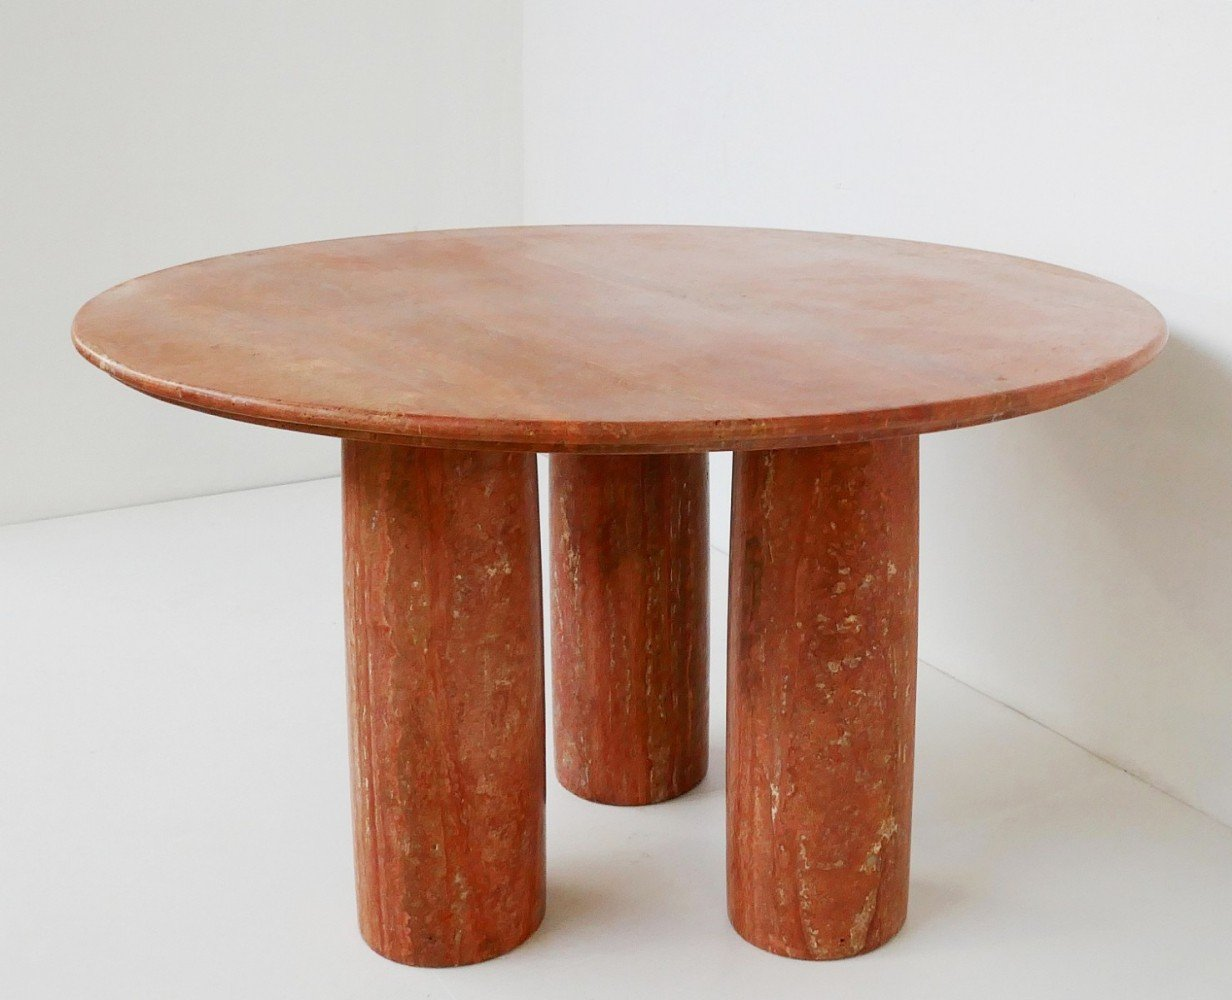 Italian Red Travertine Dining Table